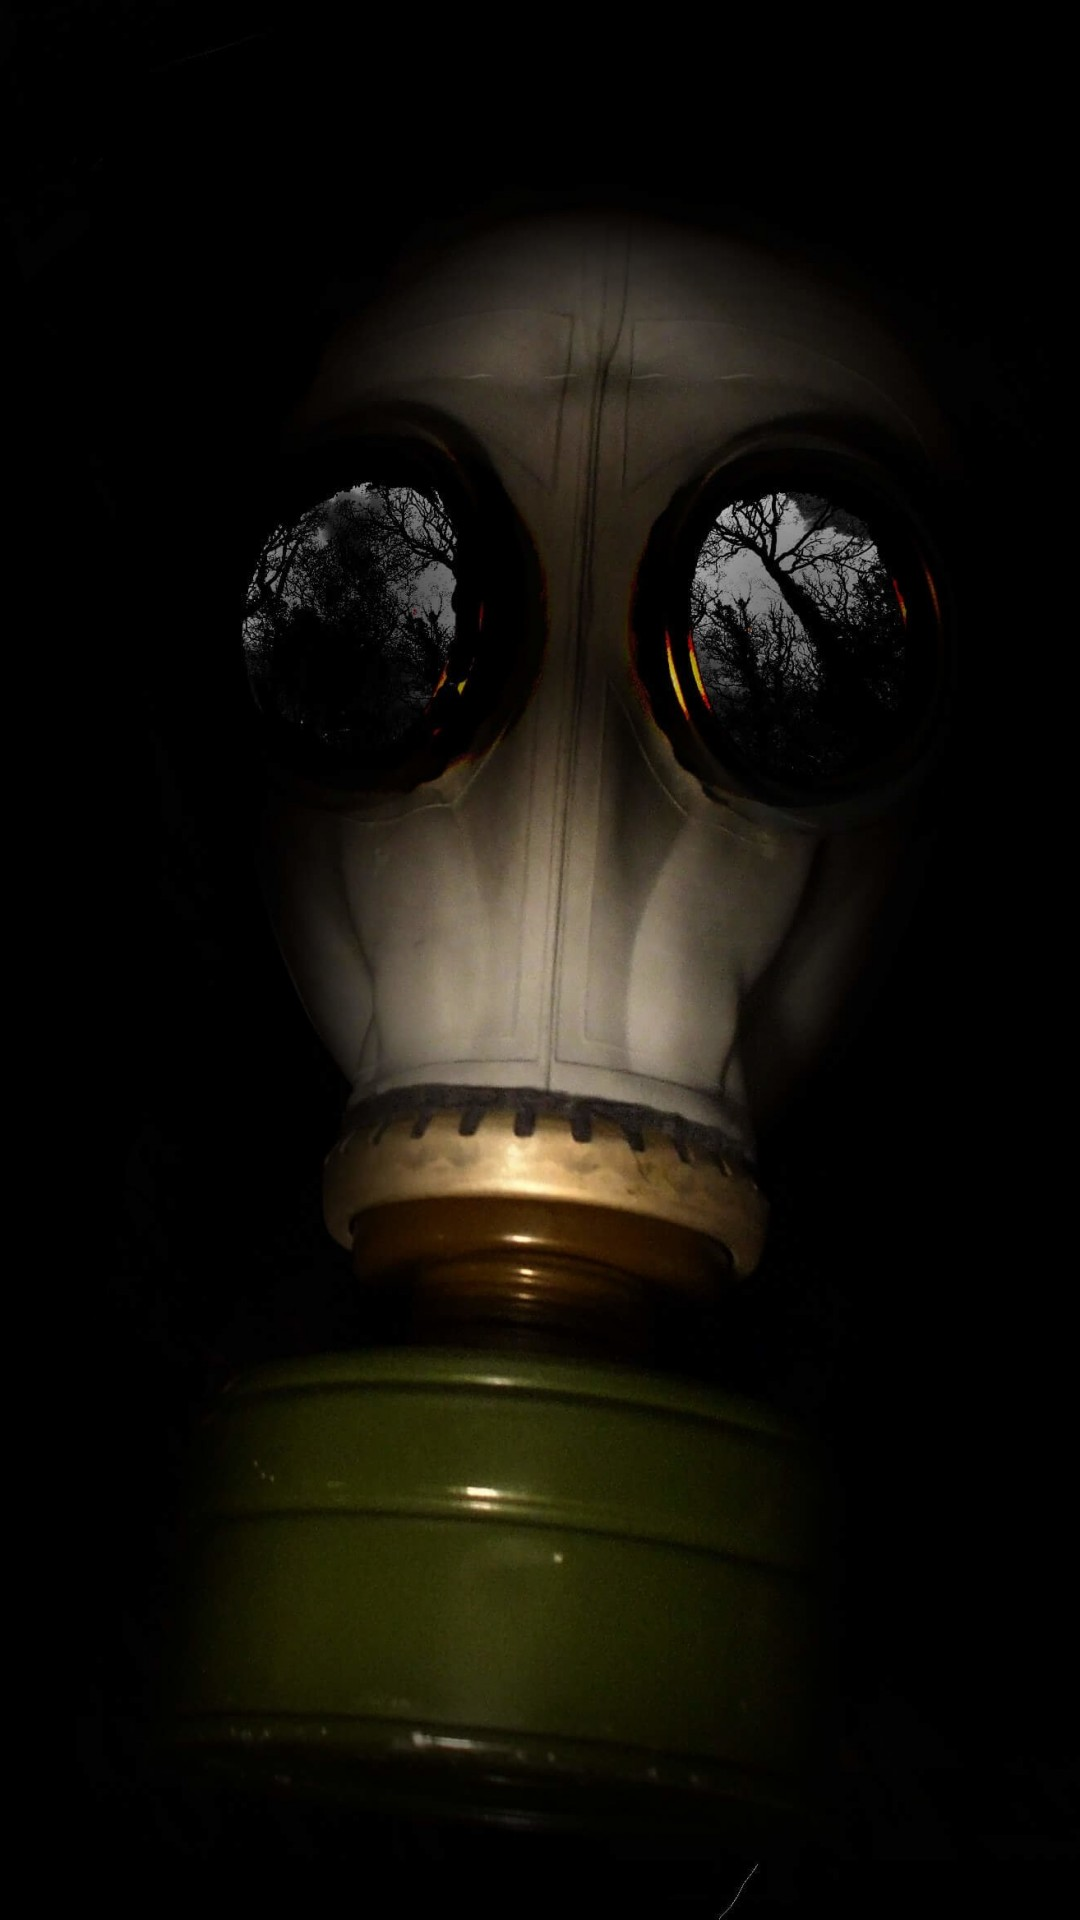 WWII Gas Mask Wallpaper for Google Nexus 5X